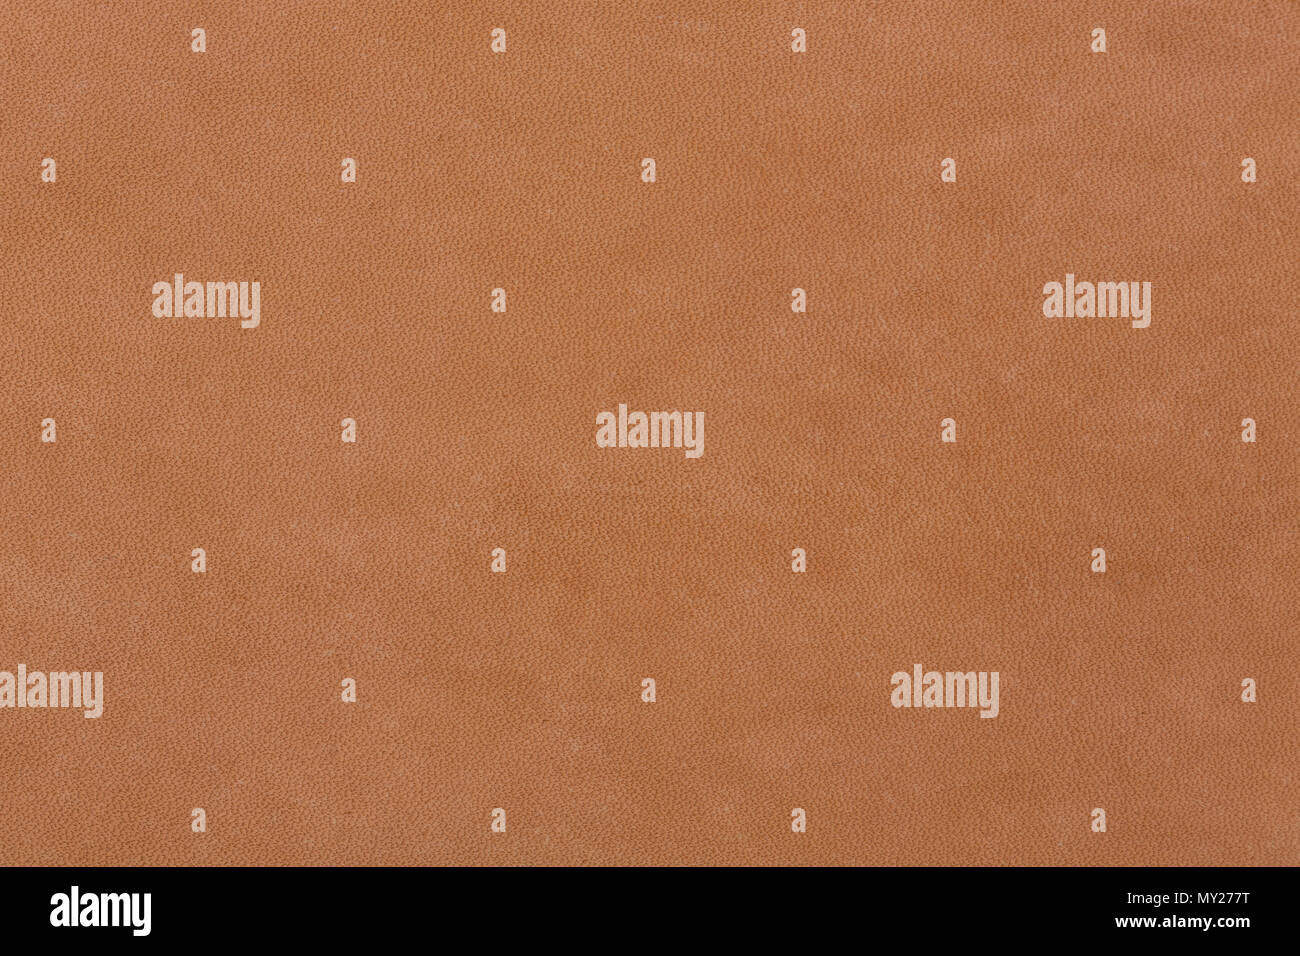 Background of natural brown leather texture. - Stock Image